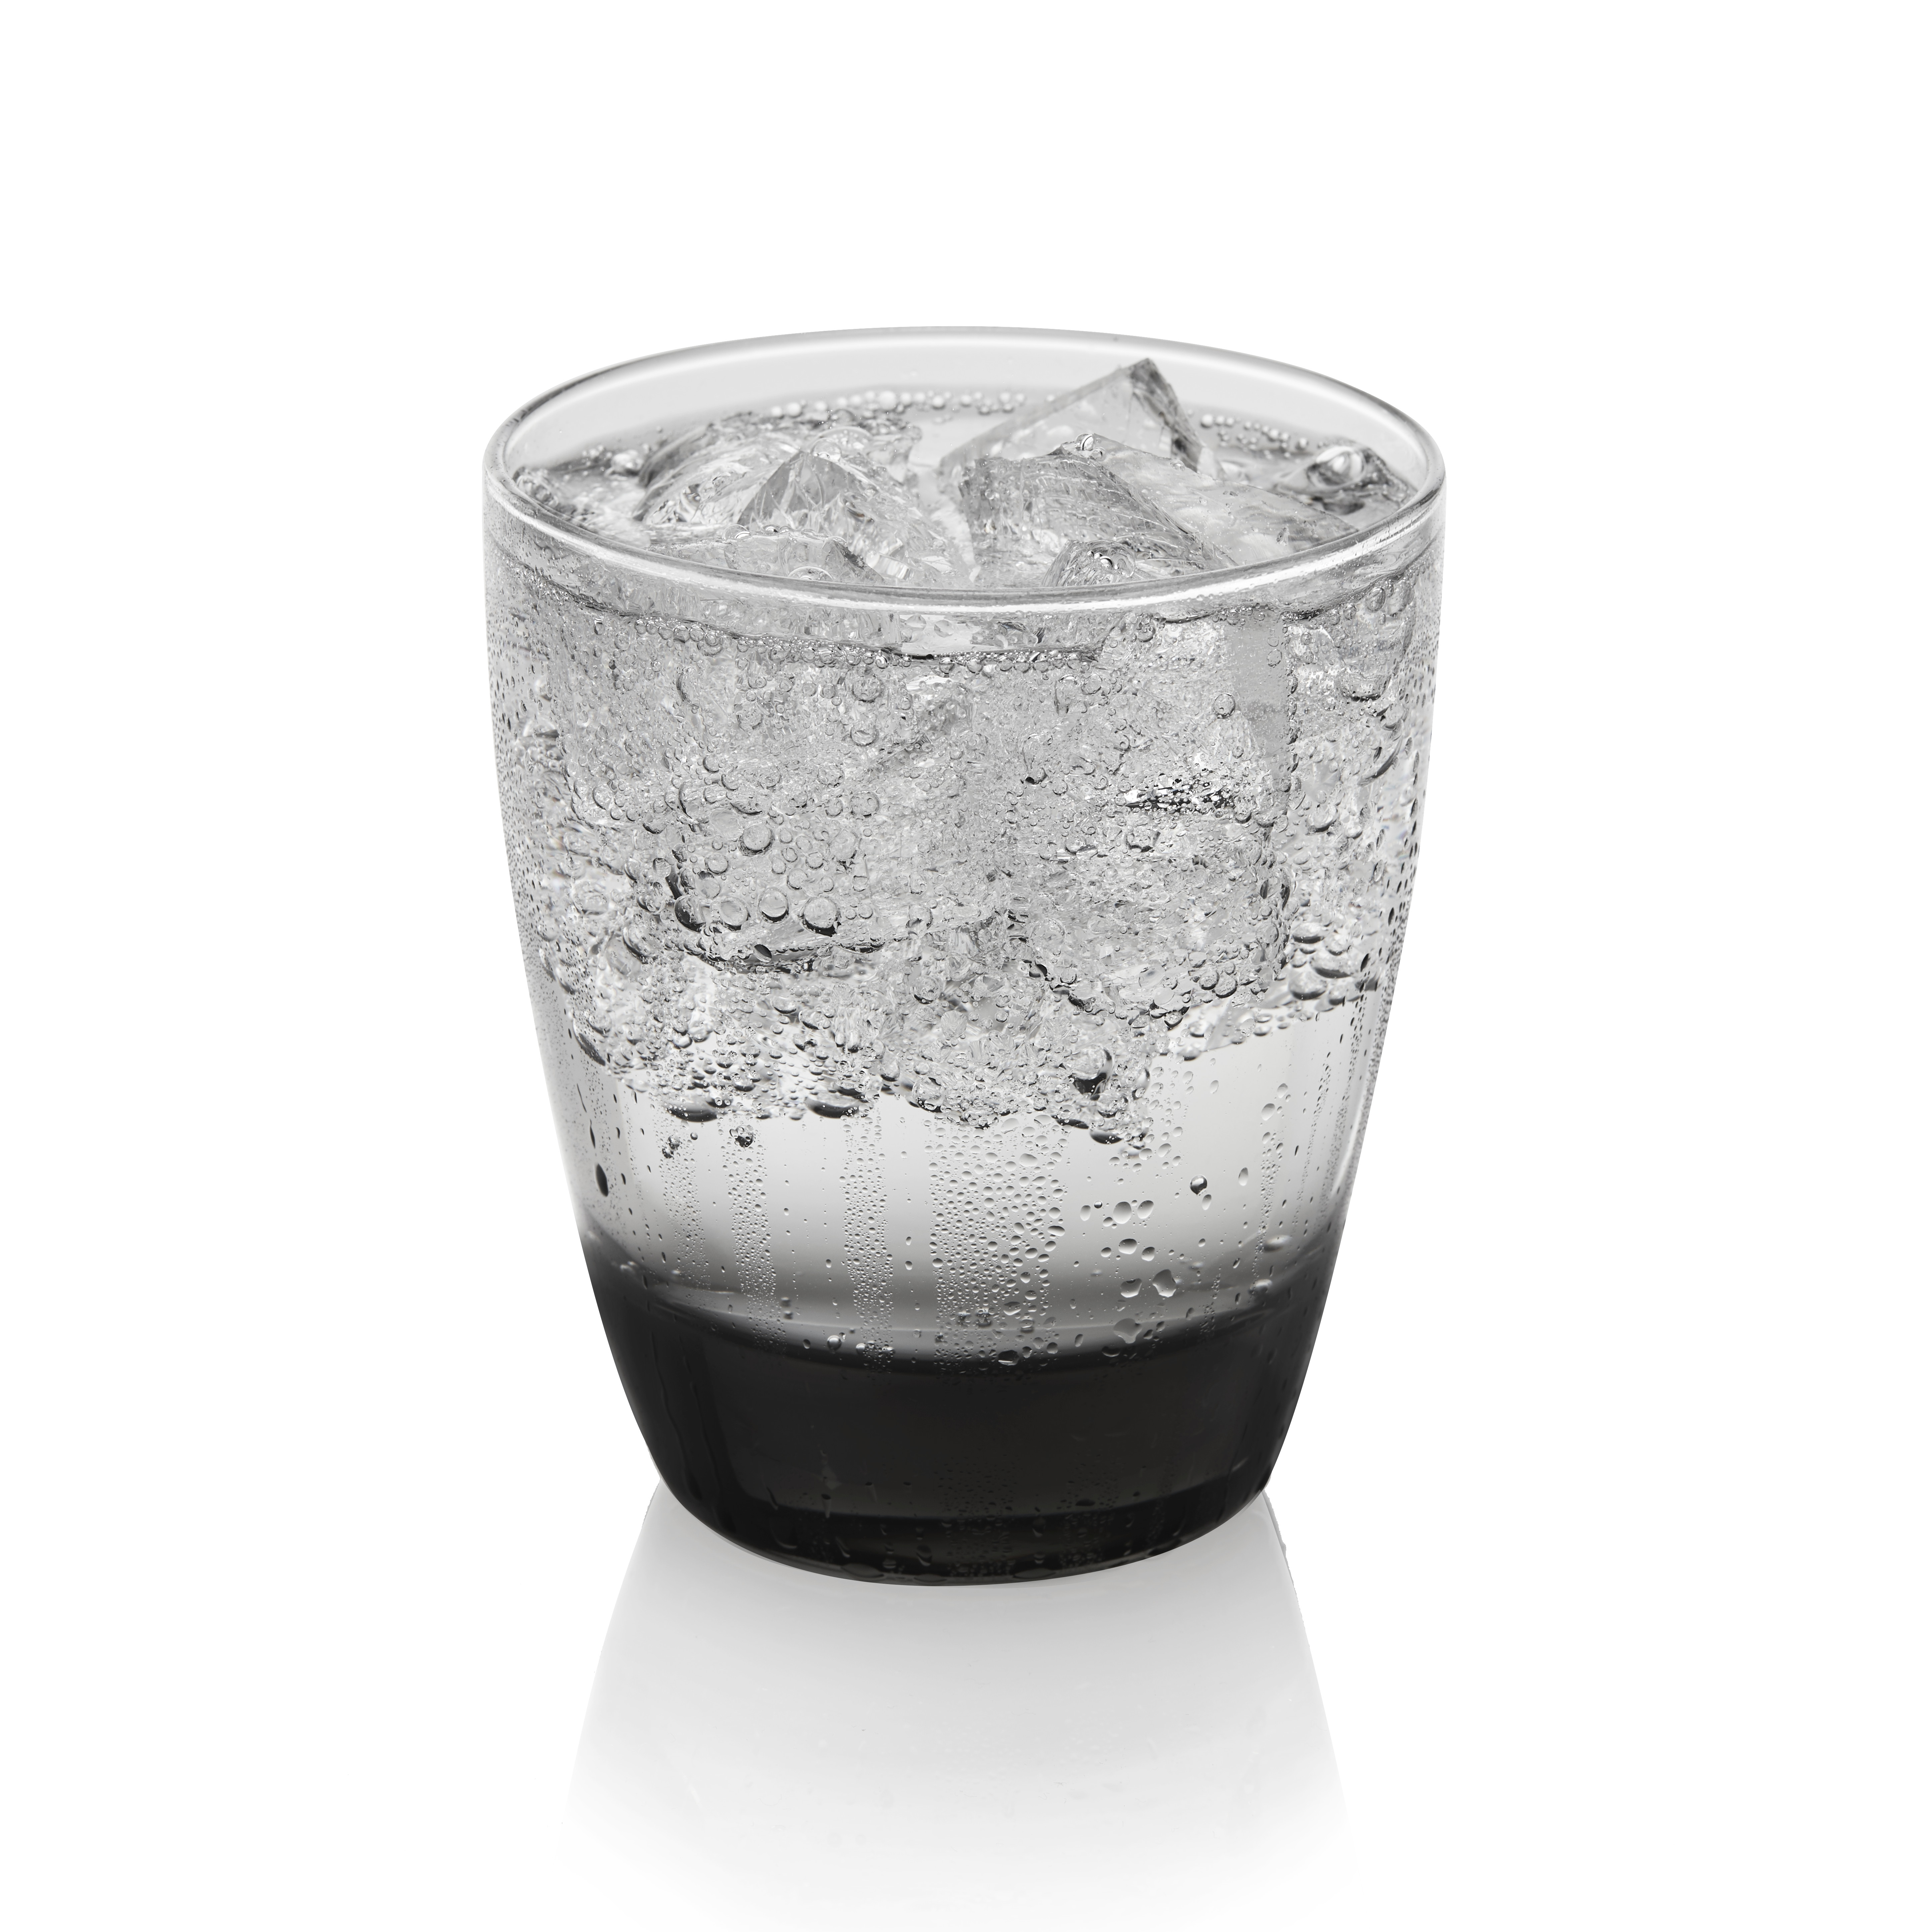 Libbey Classic Smoke Rocks Glasses, Set of 12